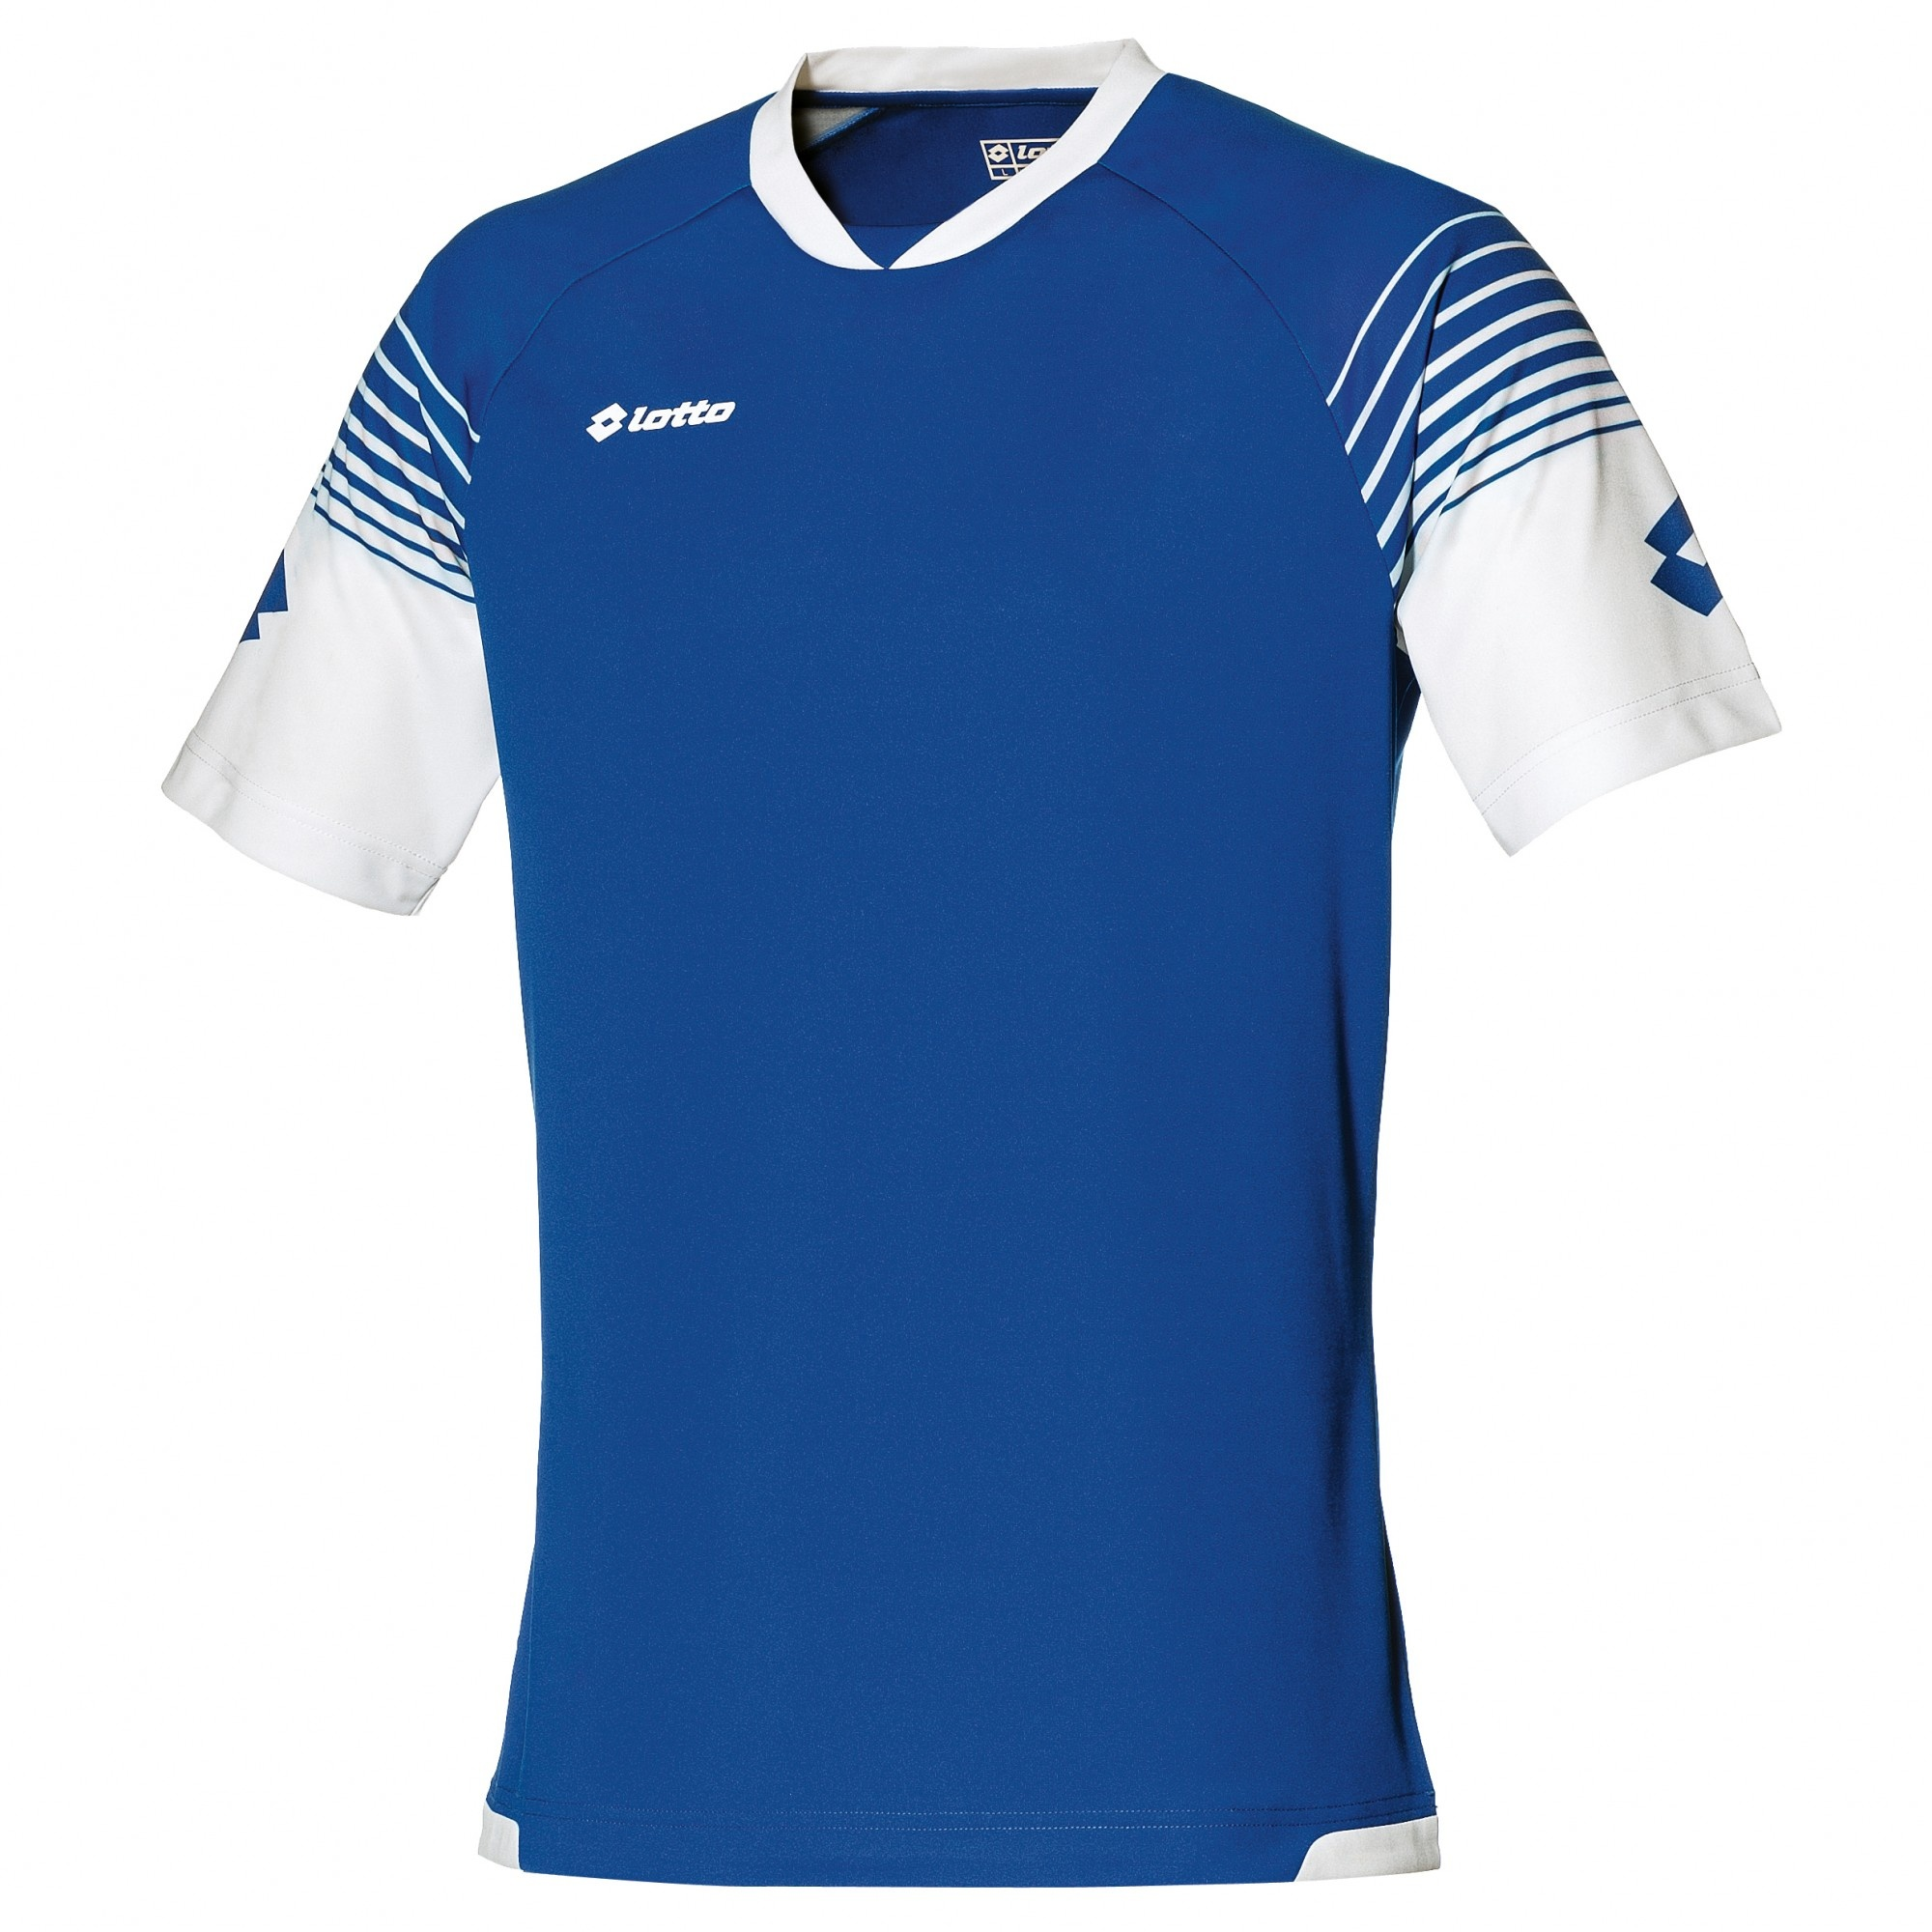 Lotto Mens Football Jersey Omega Sports T-Shirt | eBay